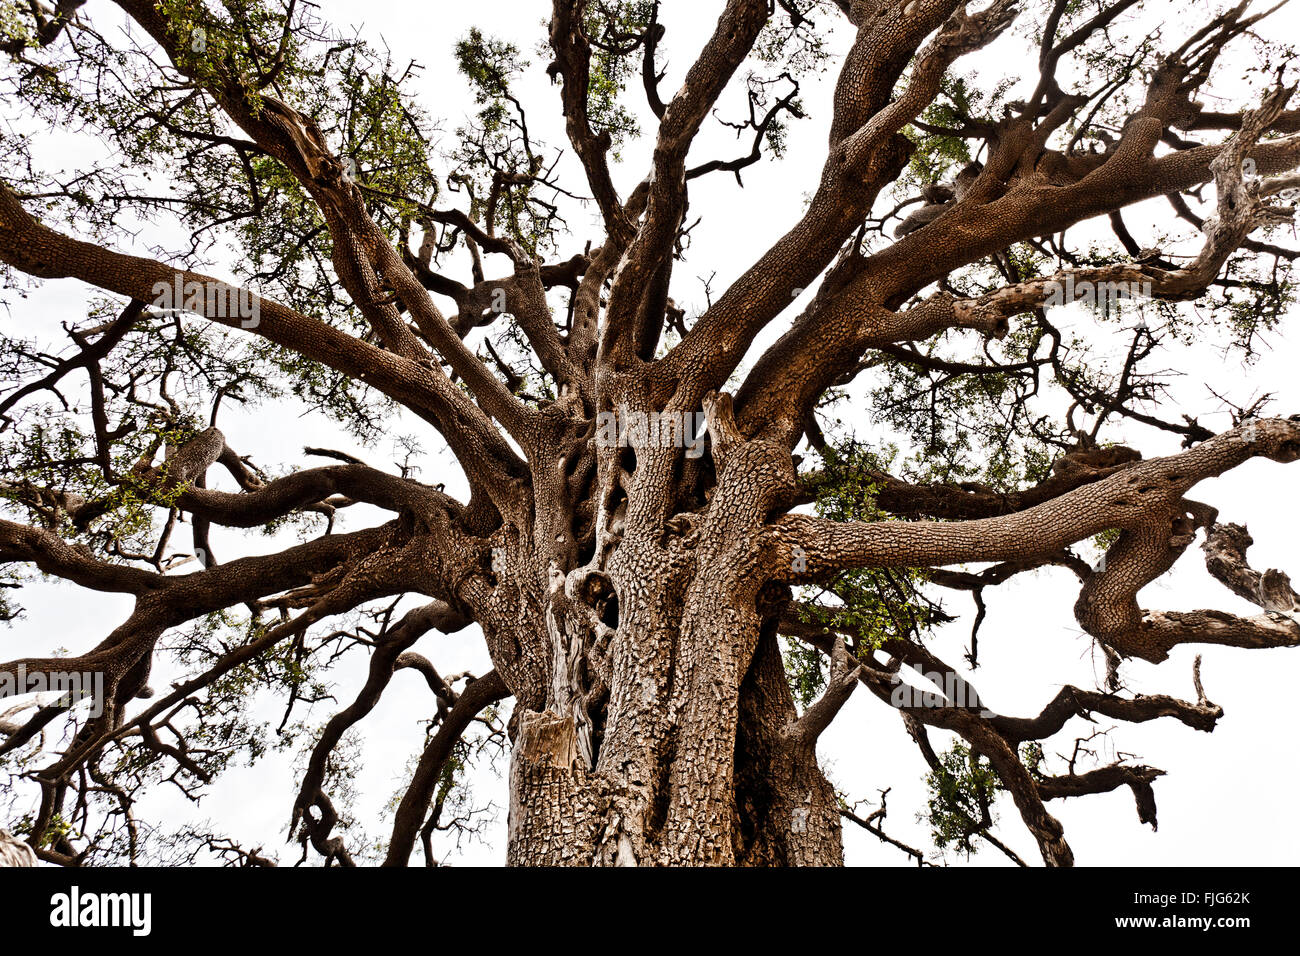 Treetop of an old Argan tree (Argania spins), in the biosphere reserve Arganerie, Essaouira, Morocco - Stock Image